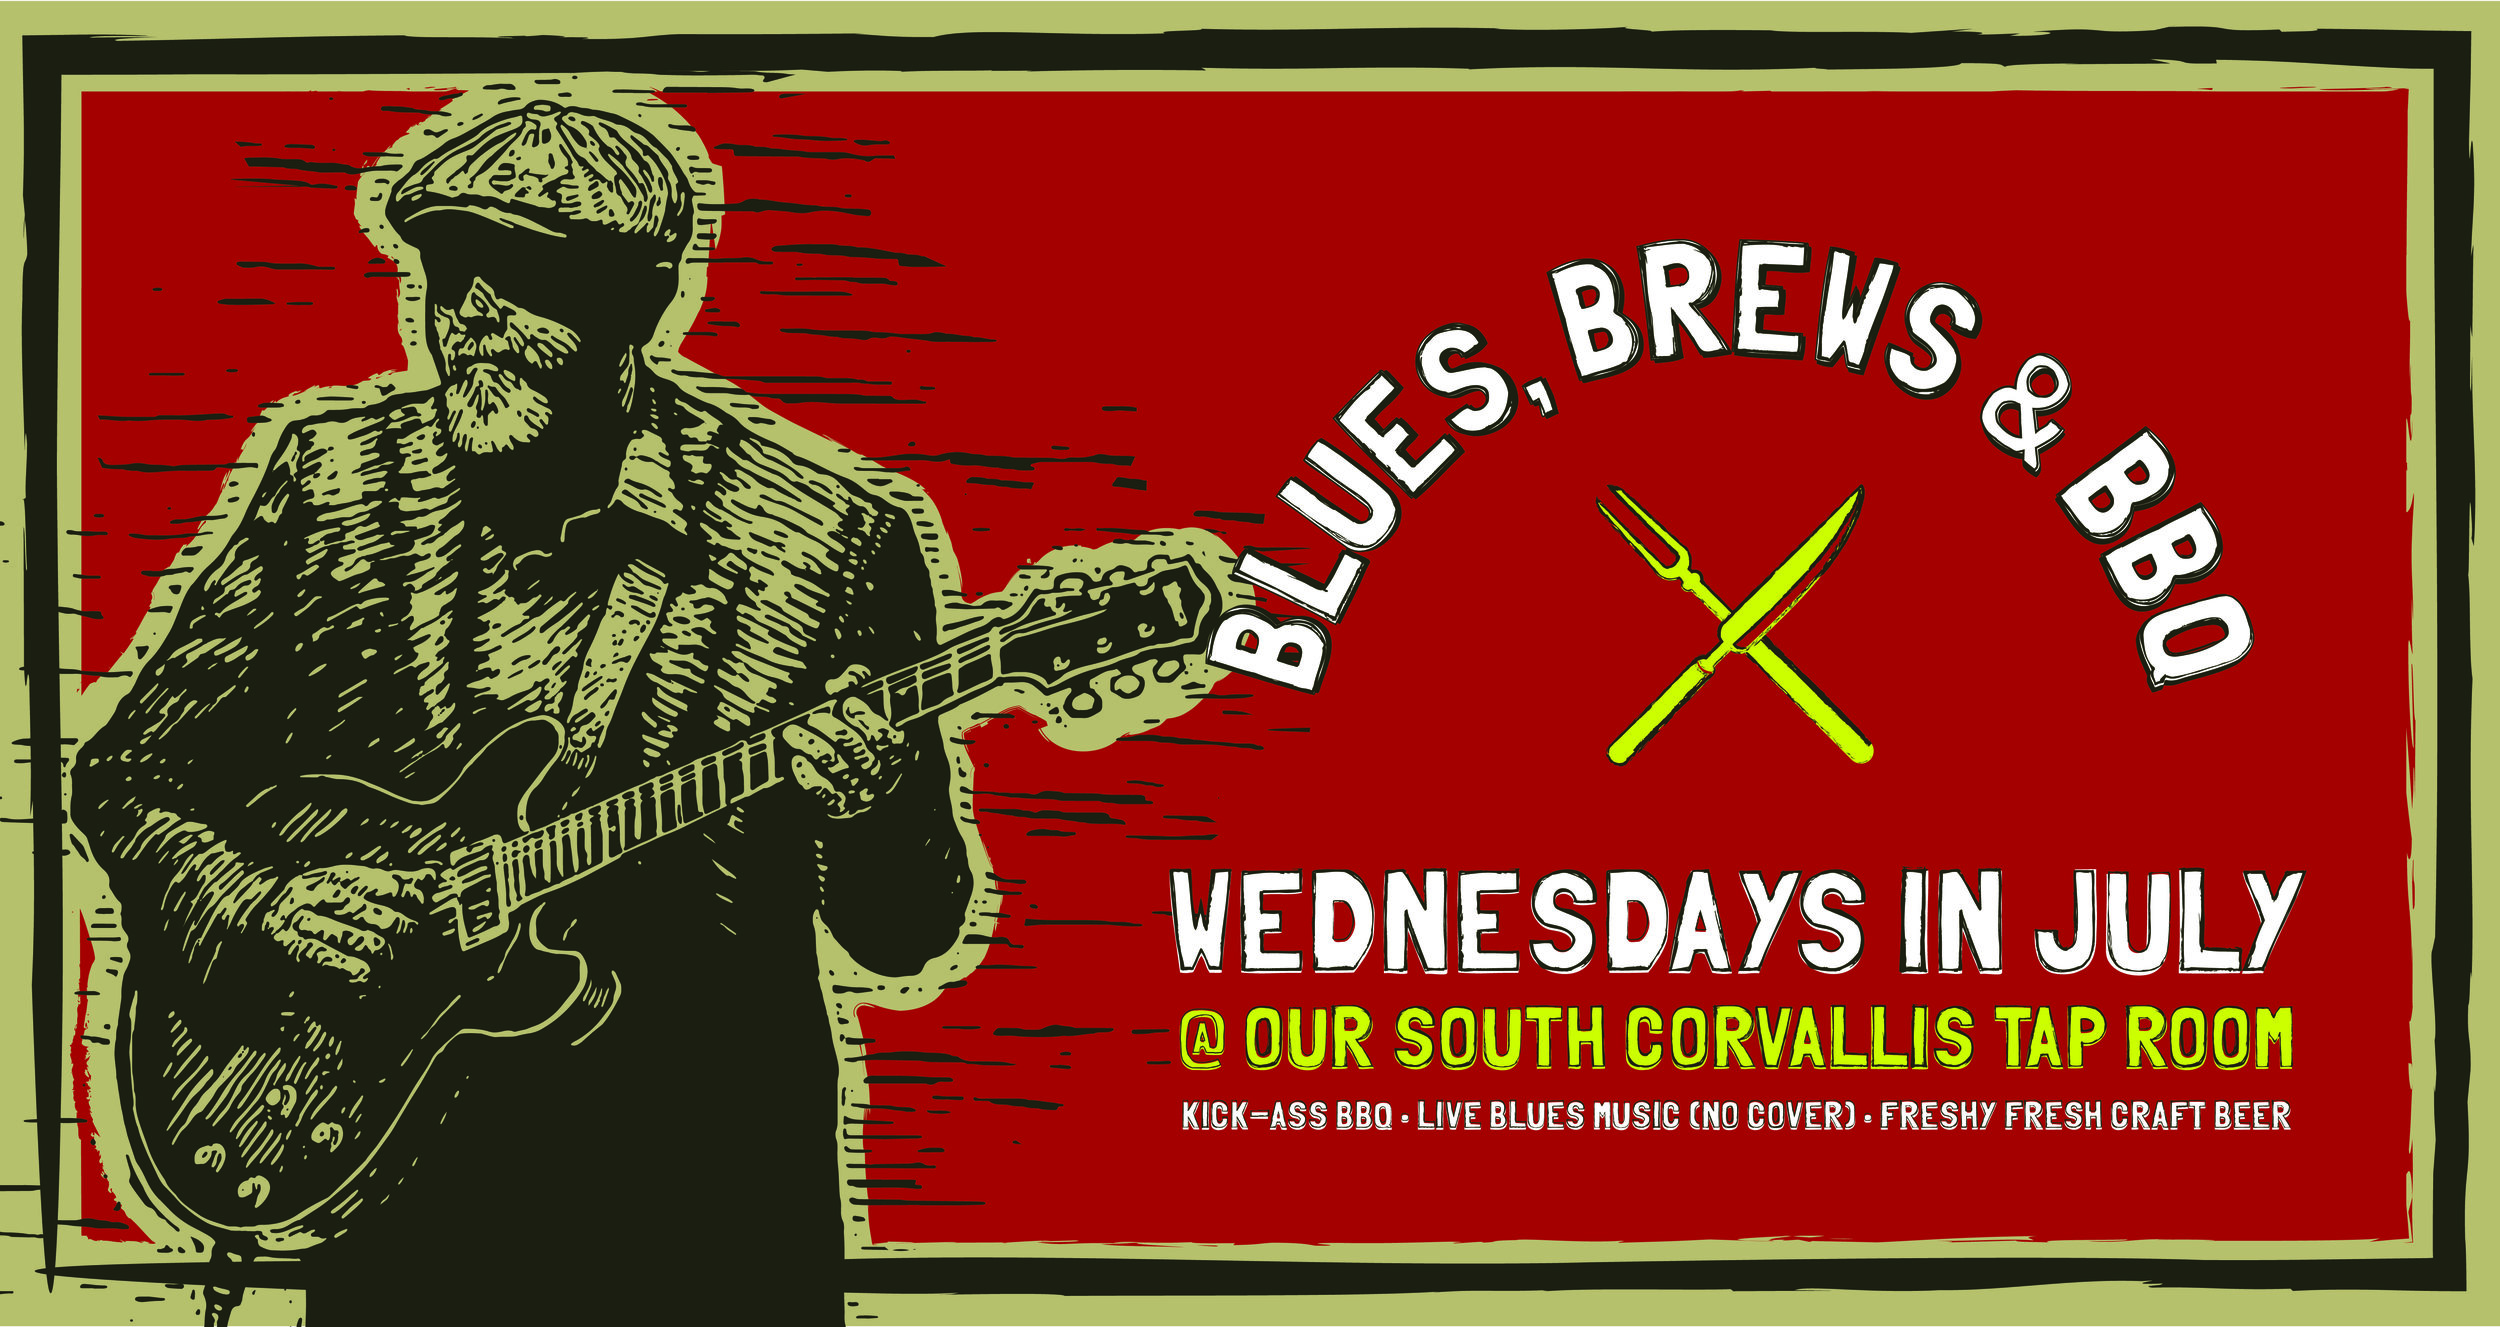 "Join us Wednesdays in July for ""Blues, Brews & BBQ"" at our Tap Room! Enjoy cover-free blues from local musicians, kick-ass BBQ specials, and freshy fresh beer brewed feet from your seat. This Wednesday we welcome Mark Lemhouse, and feature a special menu of Texas Brisket and House-Made Hot Links with sides of Potato Salad, Bourbon Pickles and Texas Toast."